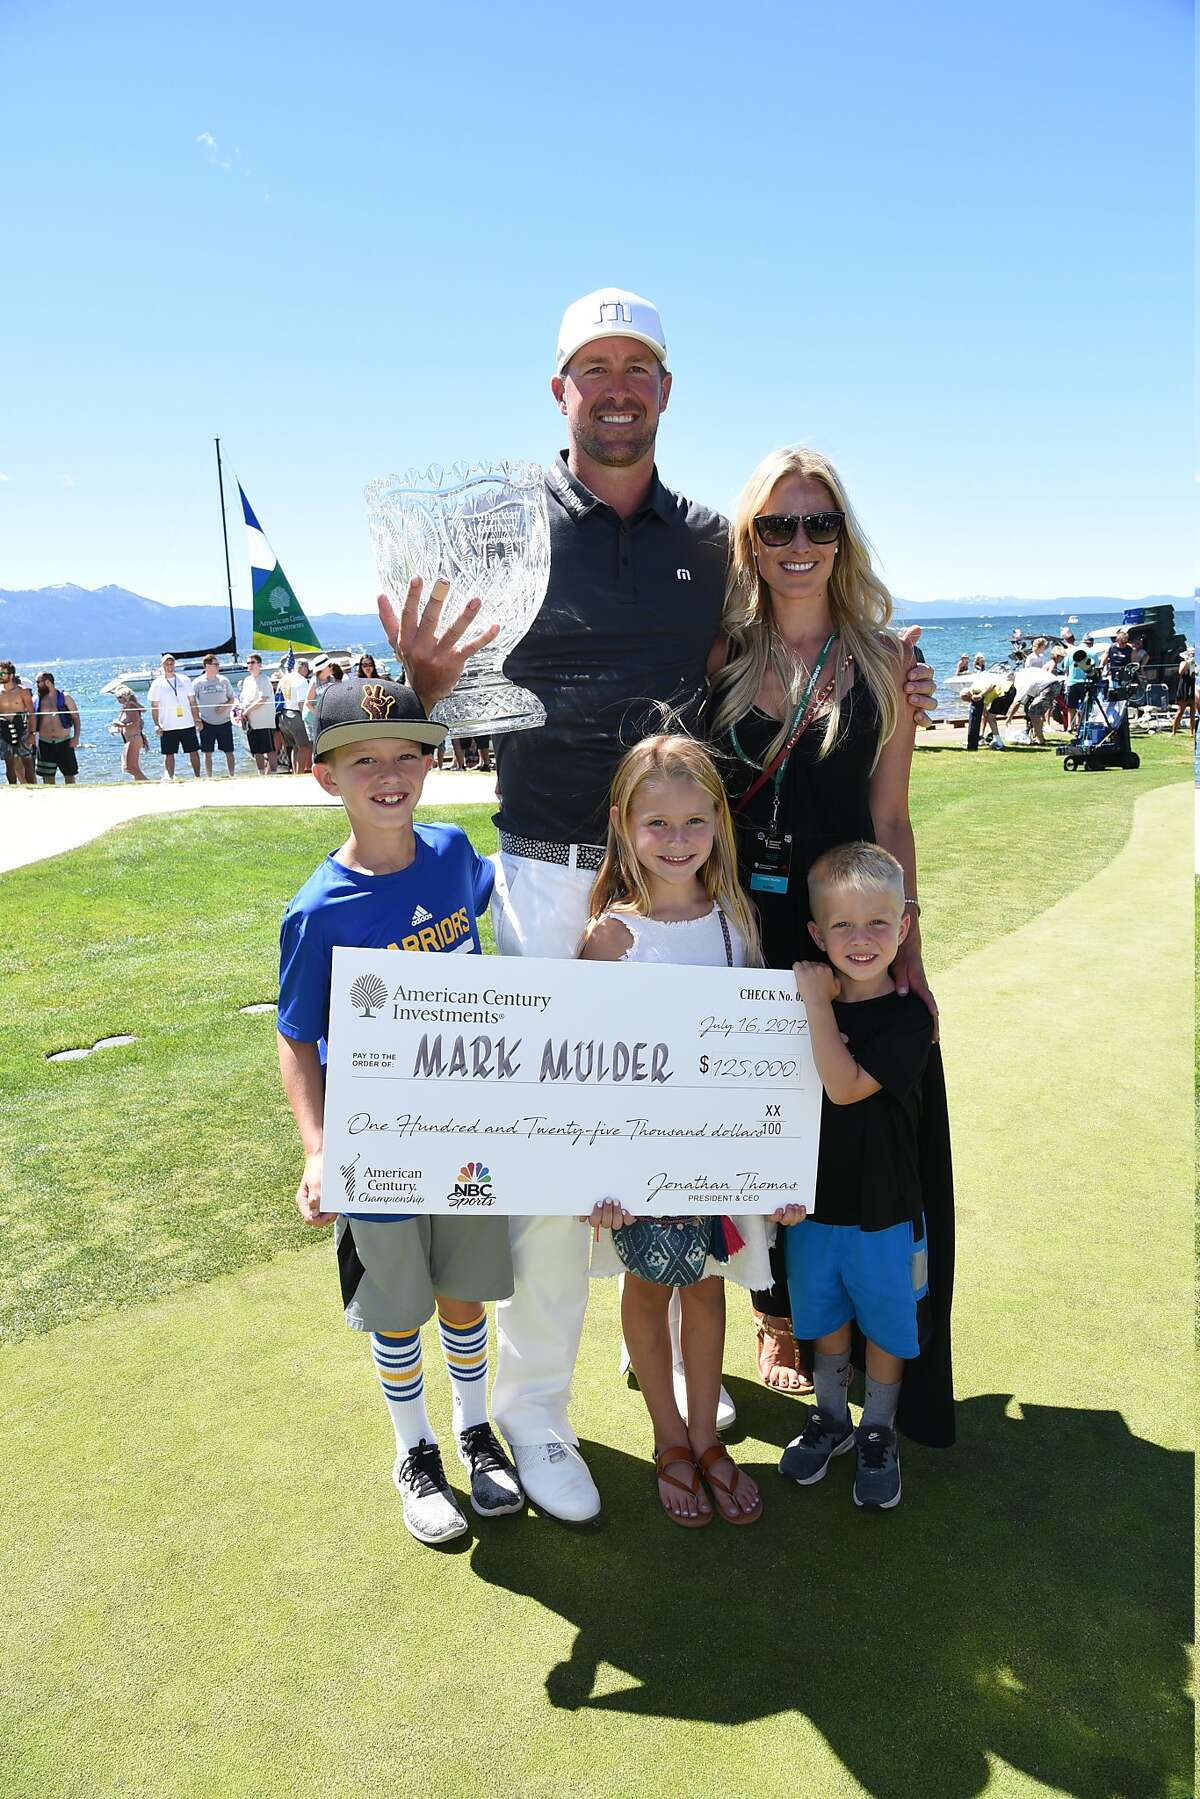 Mark Mulder poses with his family after winning the American Century Championship in Stateline Nevada on Sunday July 16, 2017.